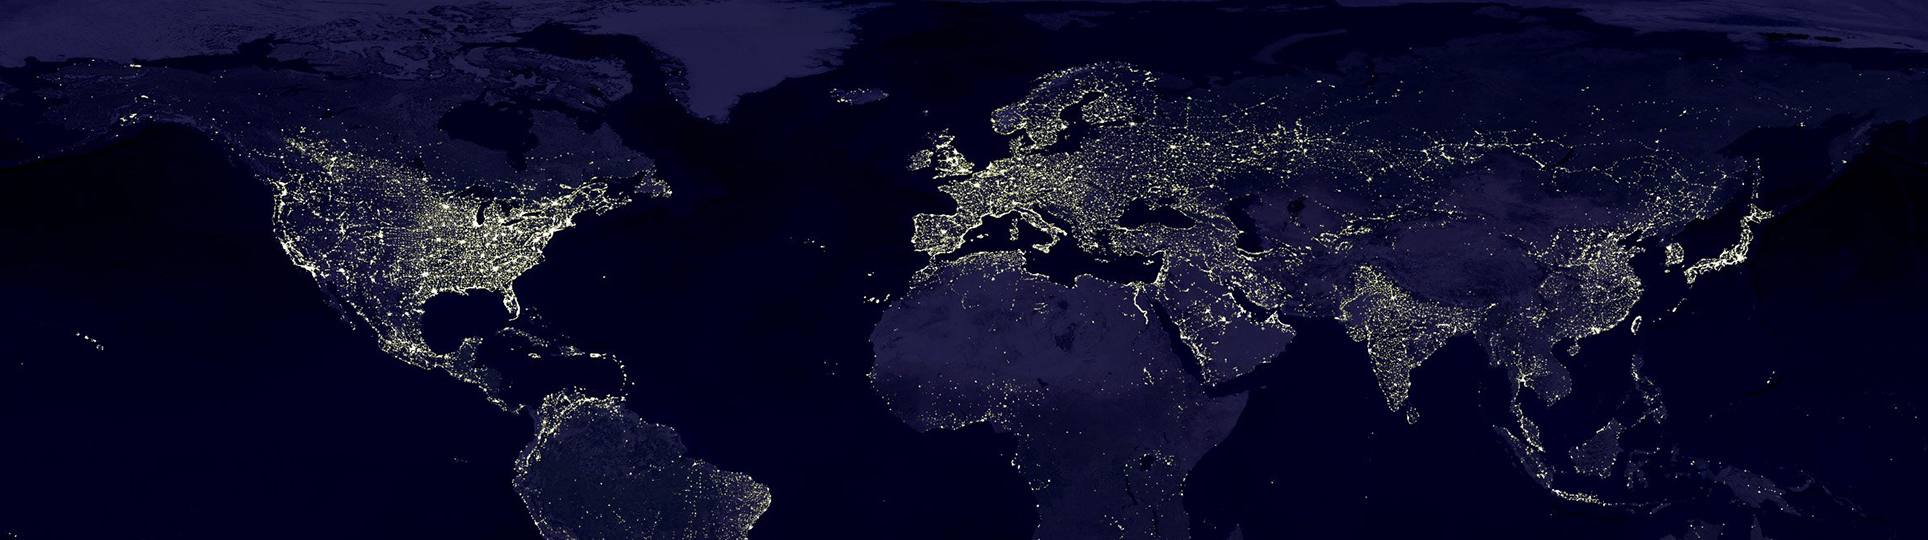 earth_slide_1928x540px